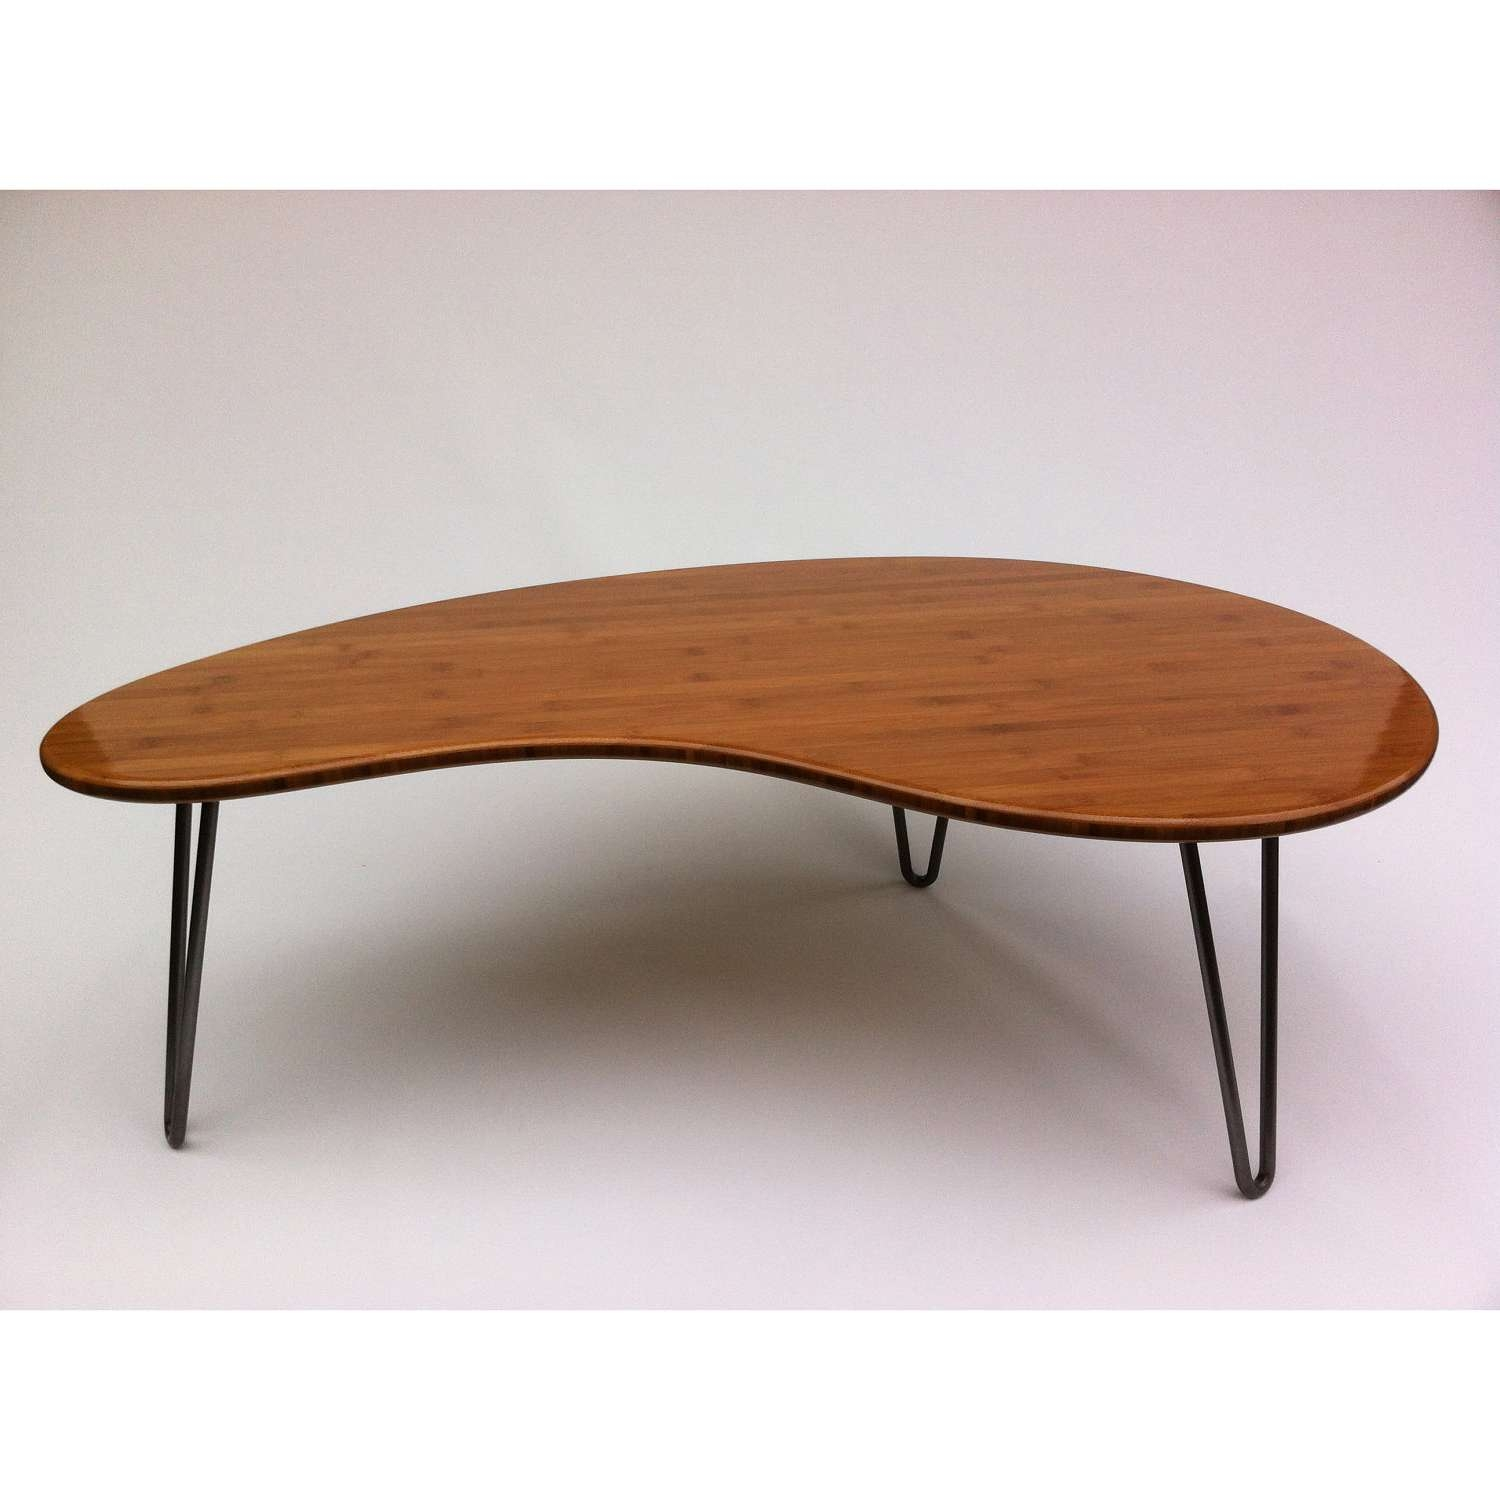 Favorite L Shaped Coffee Tables Throughout Coffee Table : Coffee Table L Shaped Ideas For Couch Shape Diy (View 9 of 20)